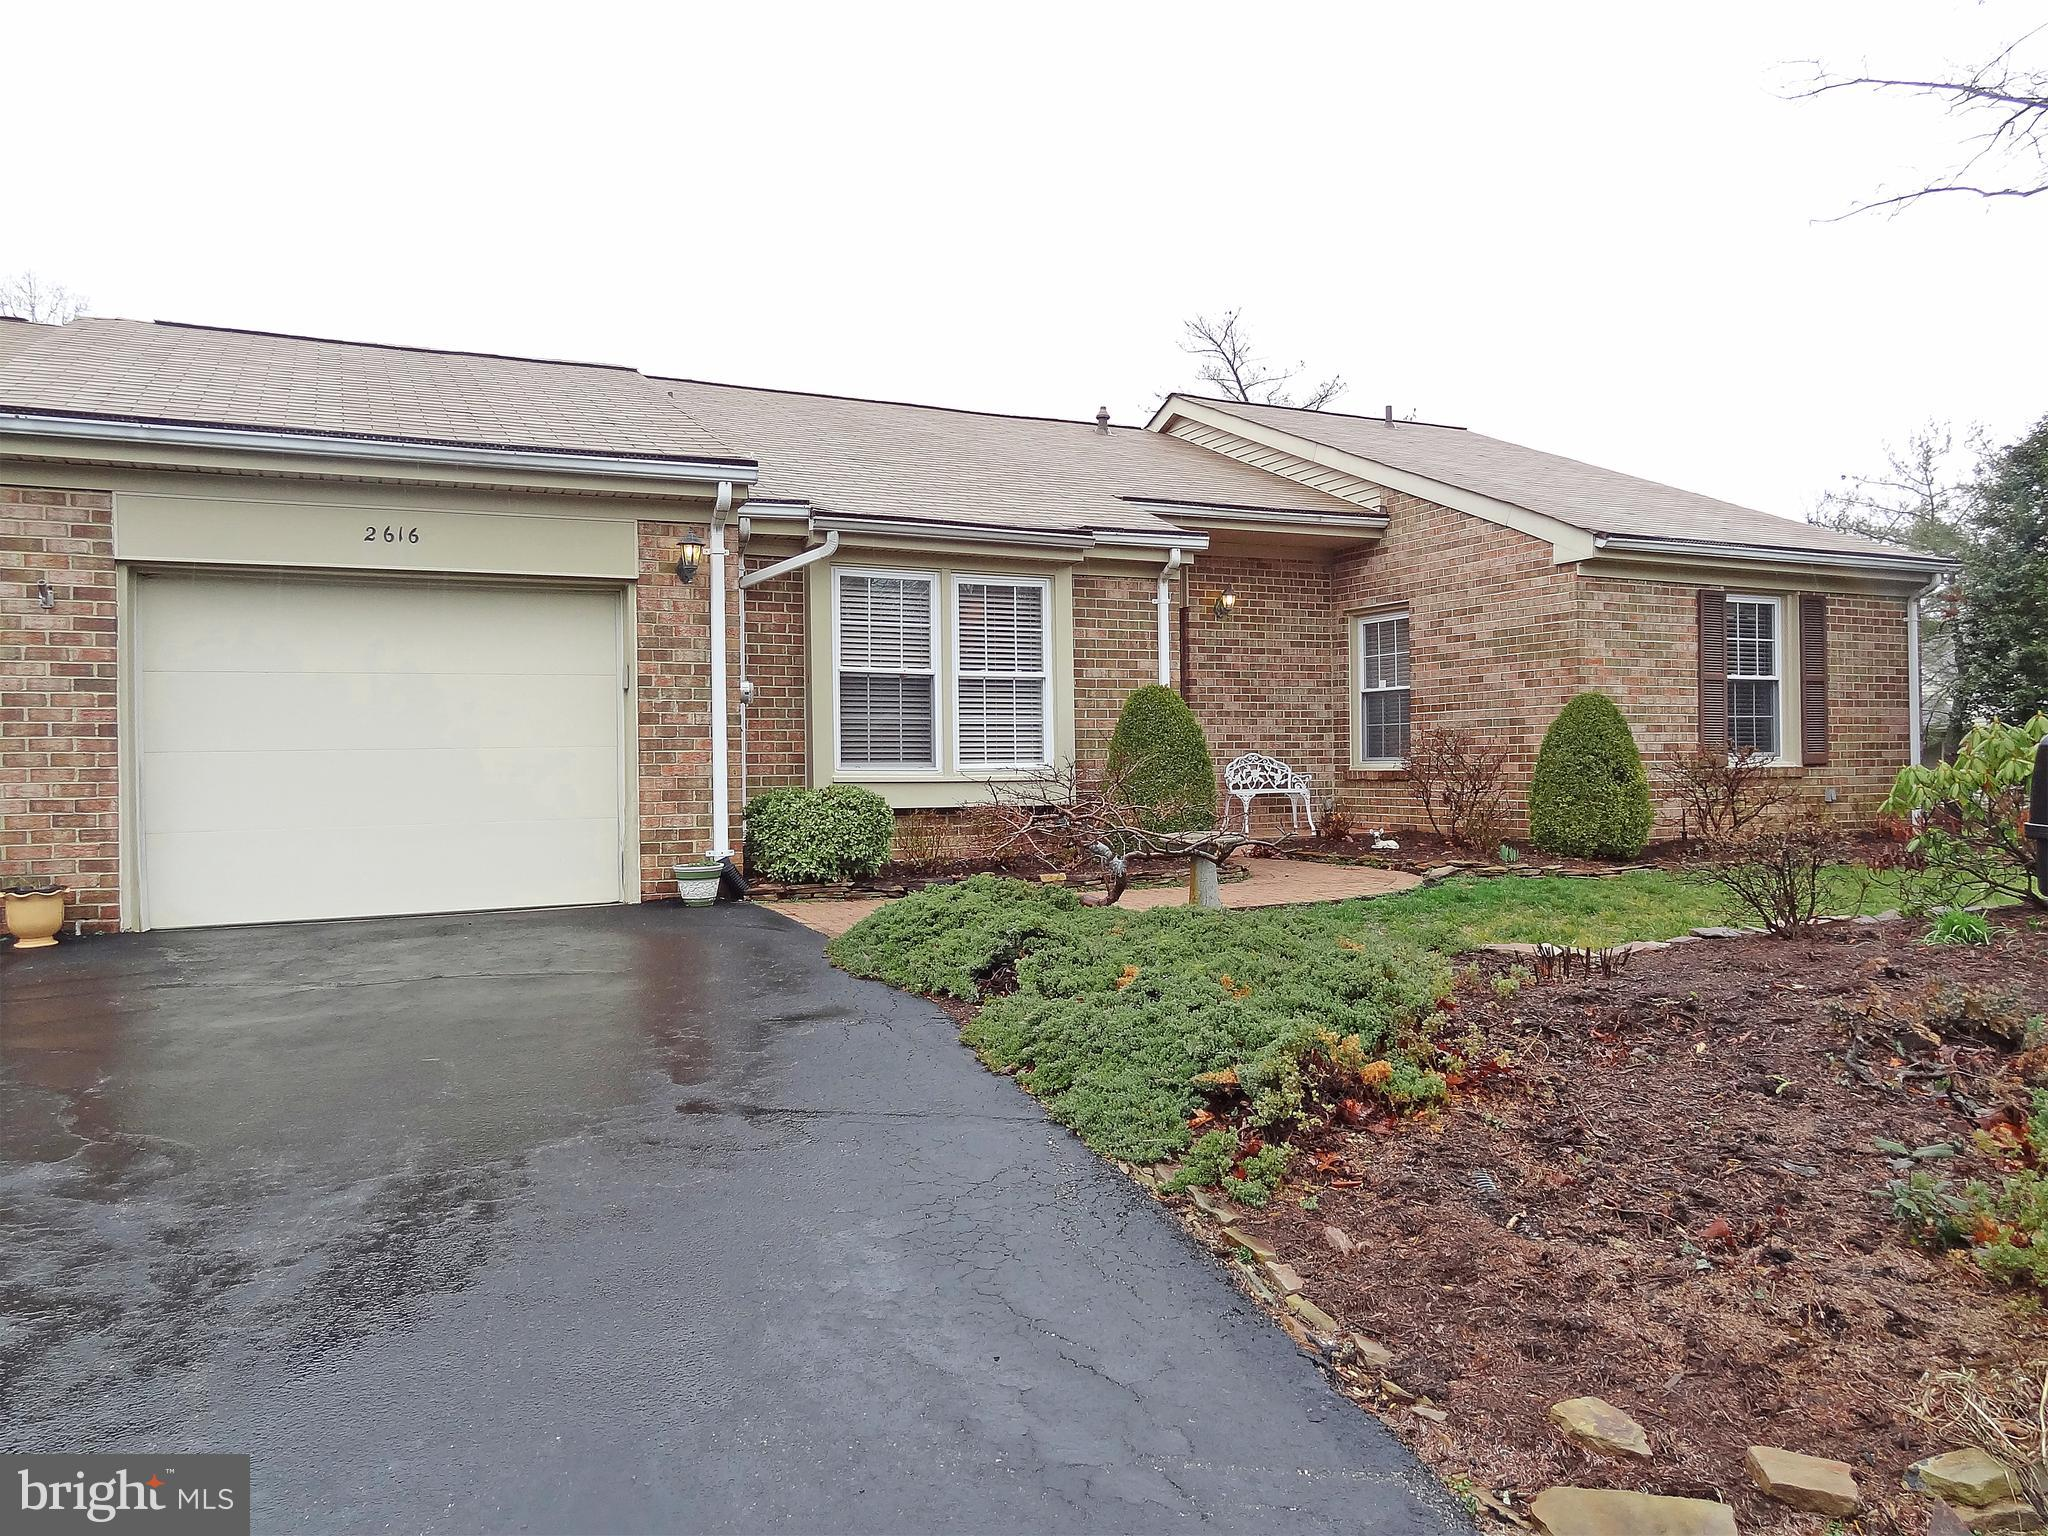 2616 Quiet Water Cove, Annapolis, MD 21401